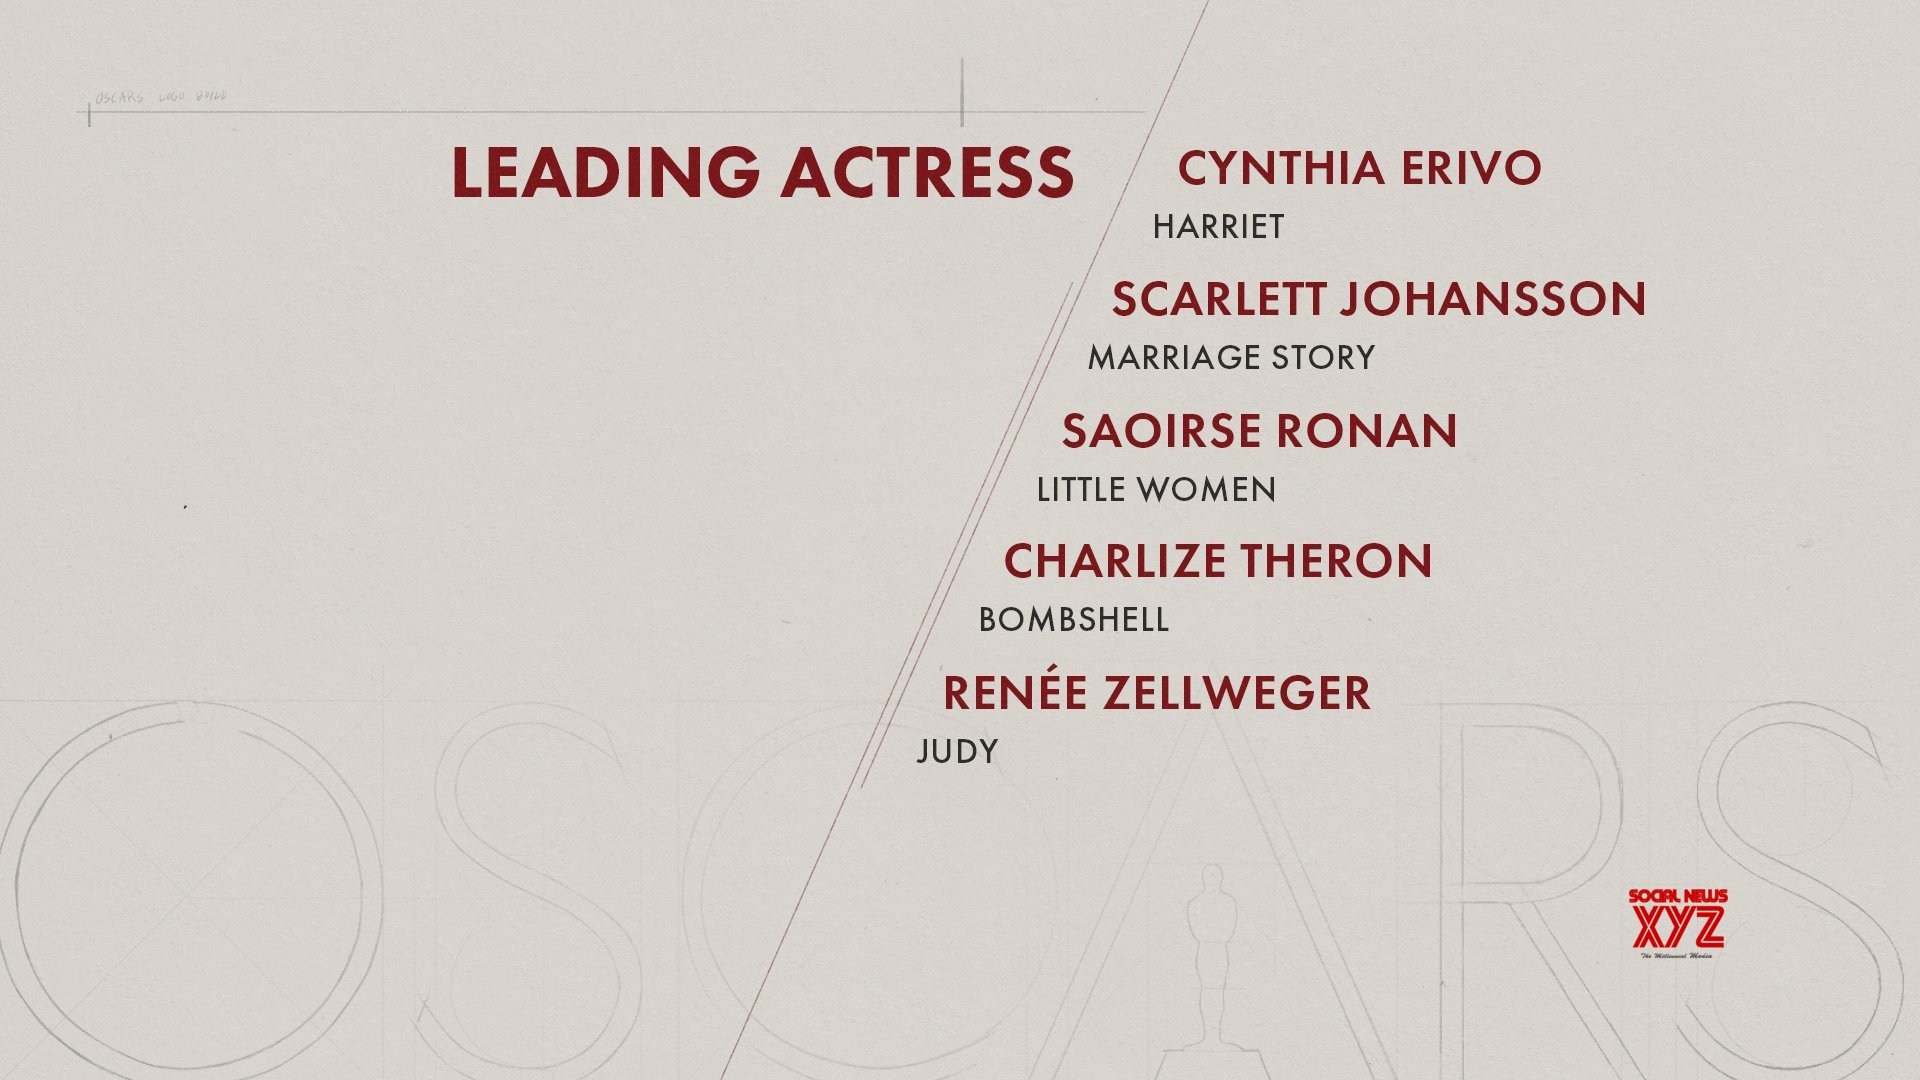 Oscars 2020 Nominees For Leading Actress